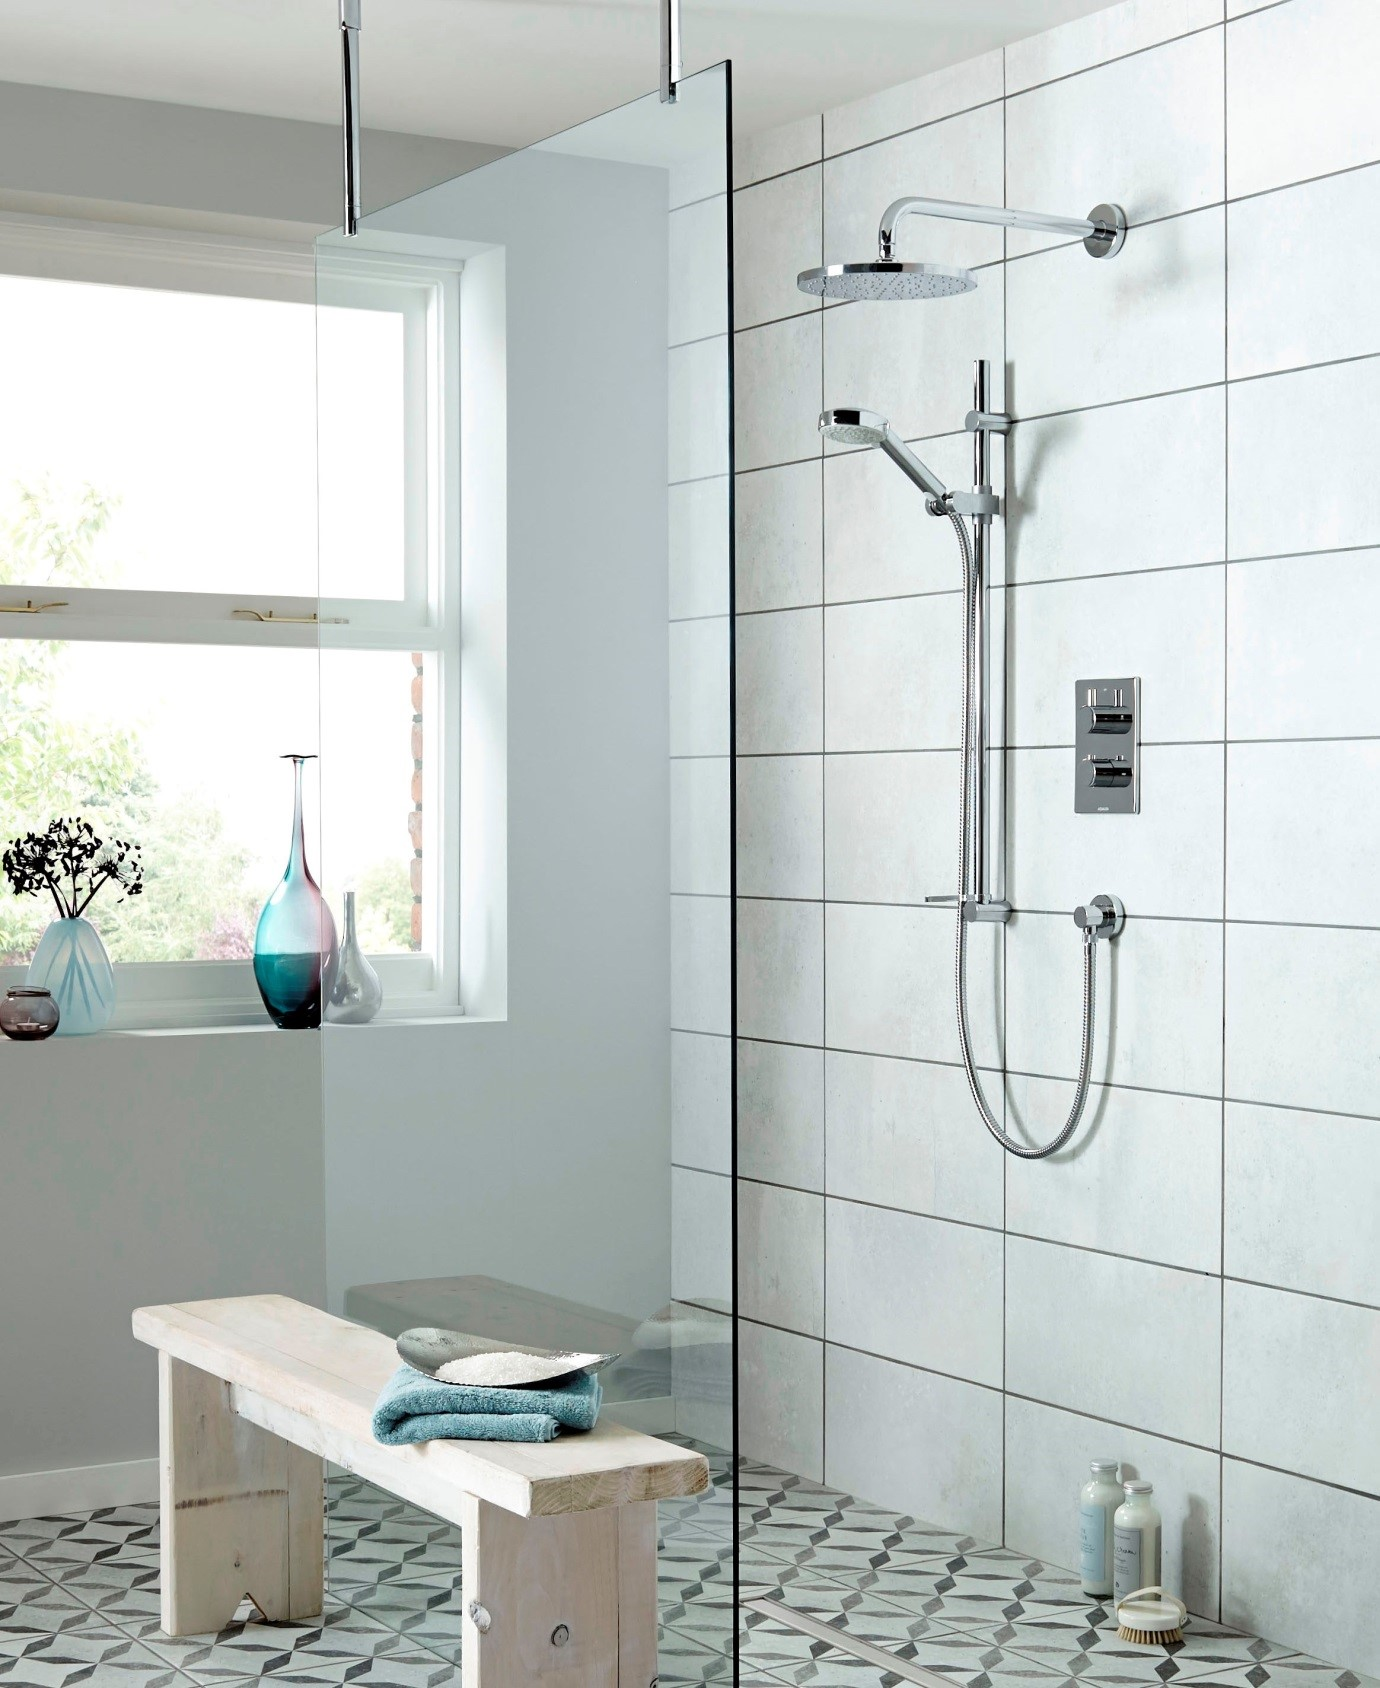 Aqualisa fixed head and shower kit with riser available from BATHLINE bathrooms.